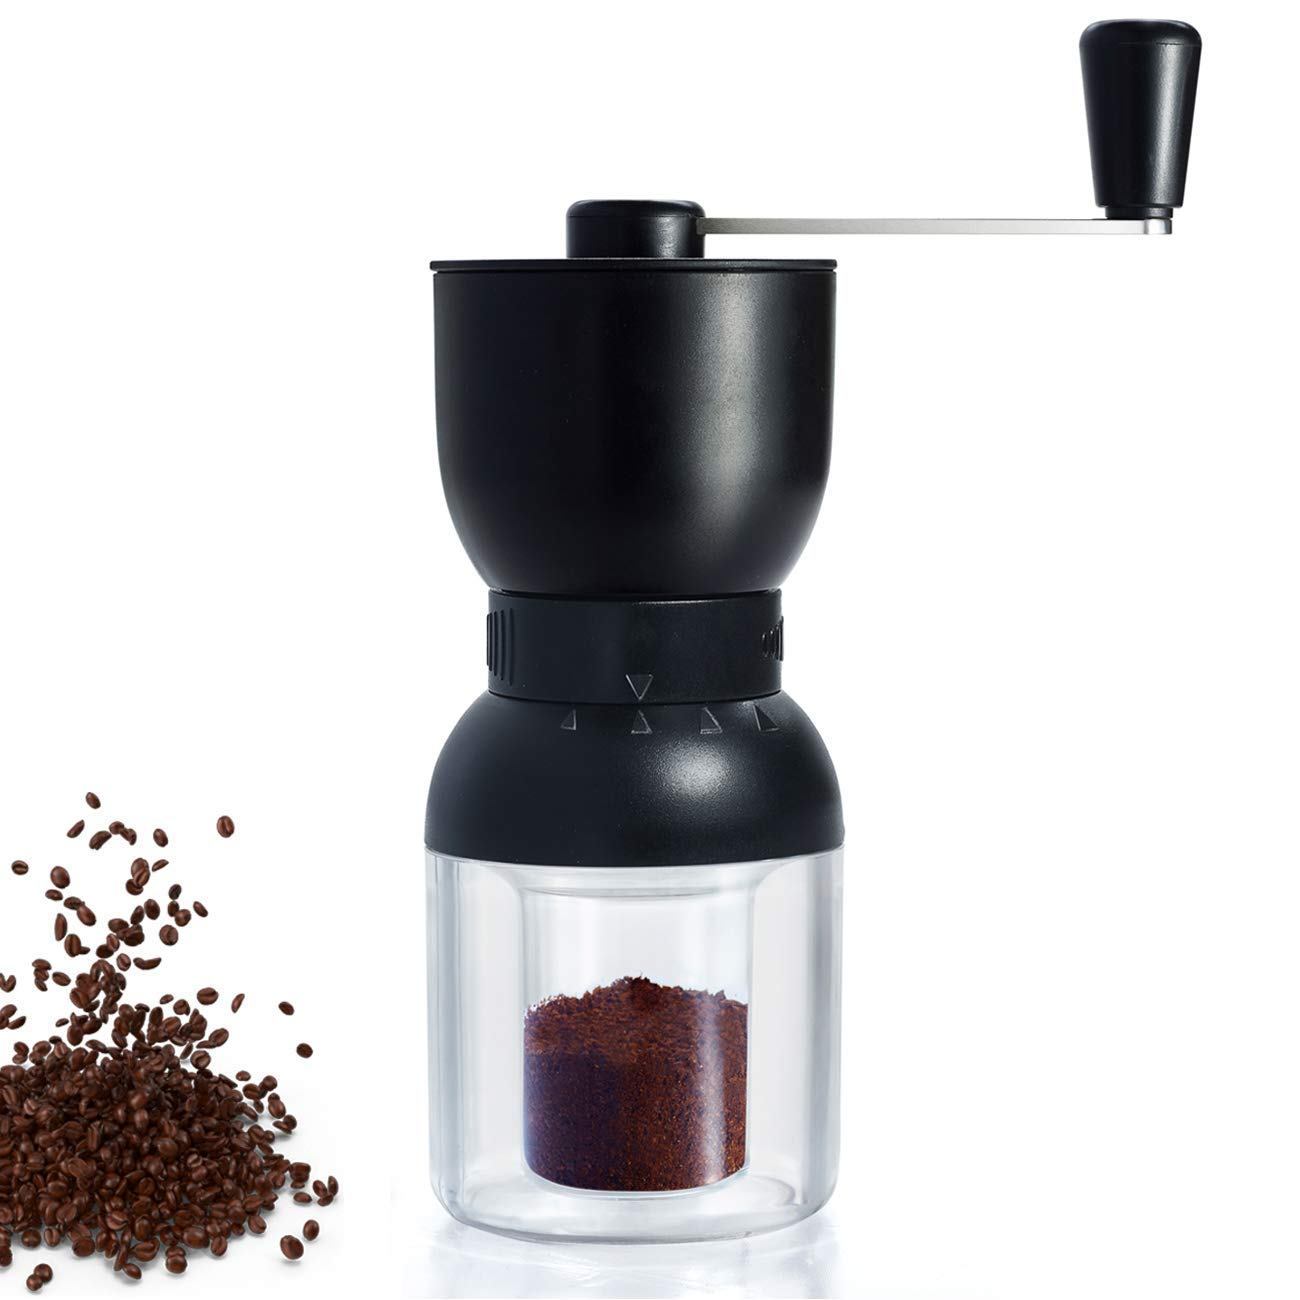 Manual Coffee Grinder with Ceramic Burrs, LHS Hand Coffee Mill with Two Containers Adjustable Coarseness Refillable Lids by LHS